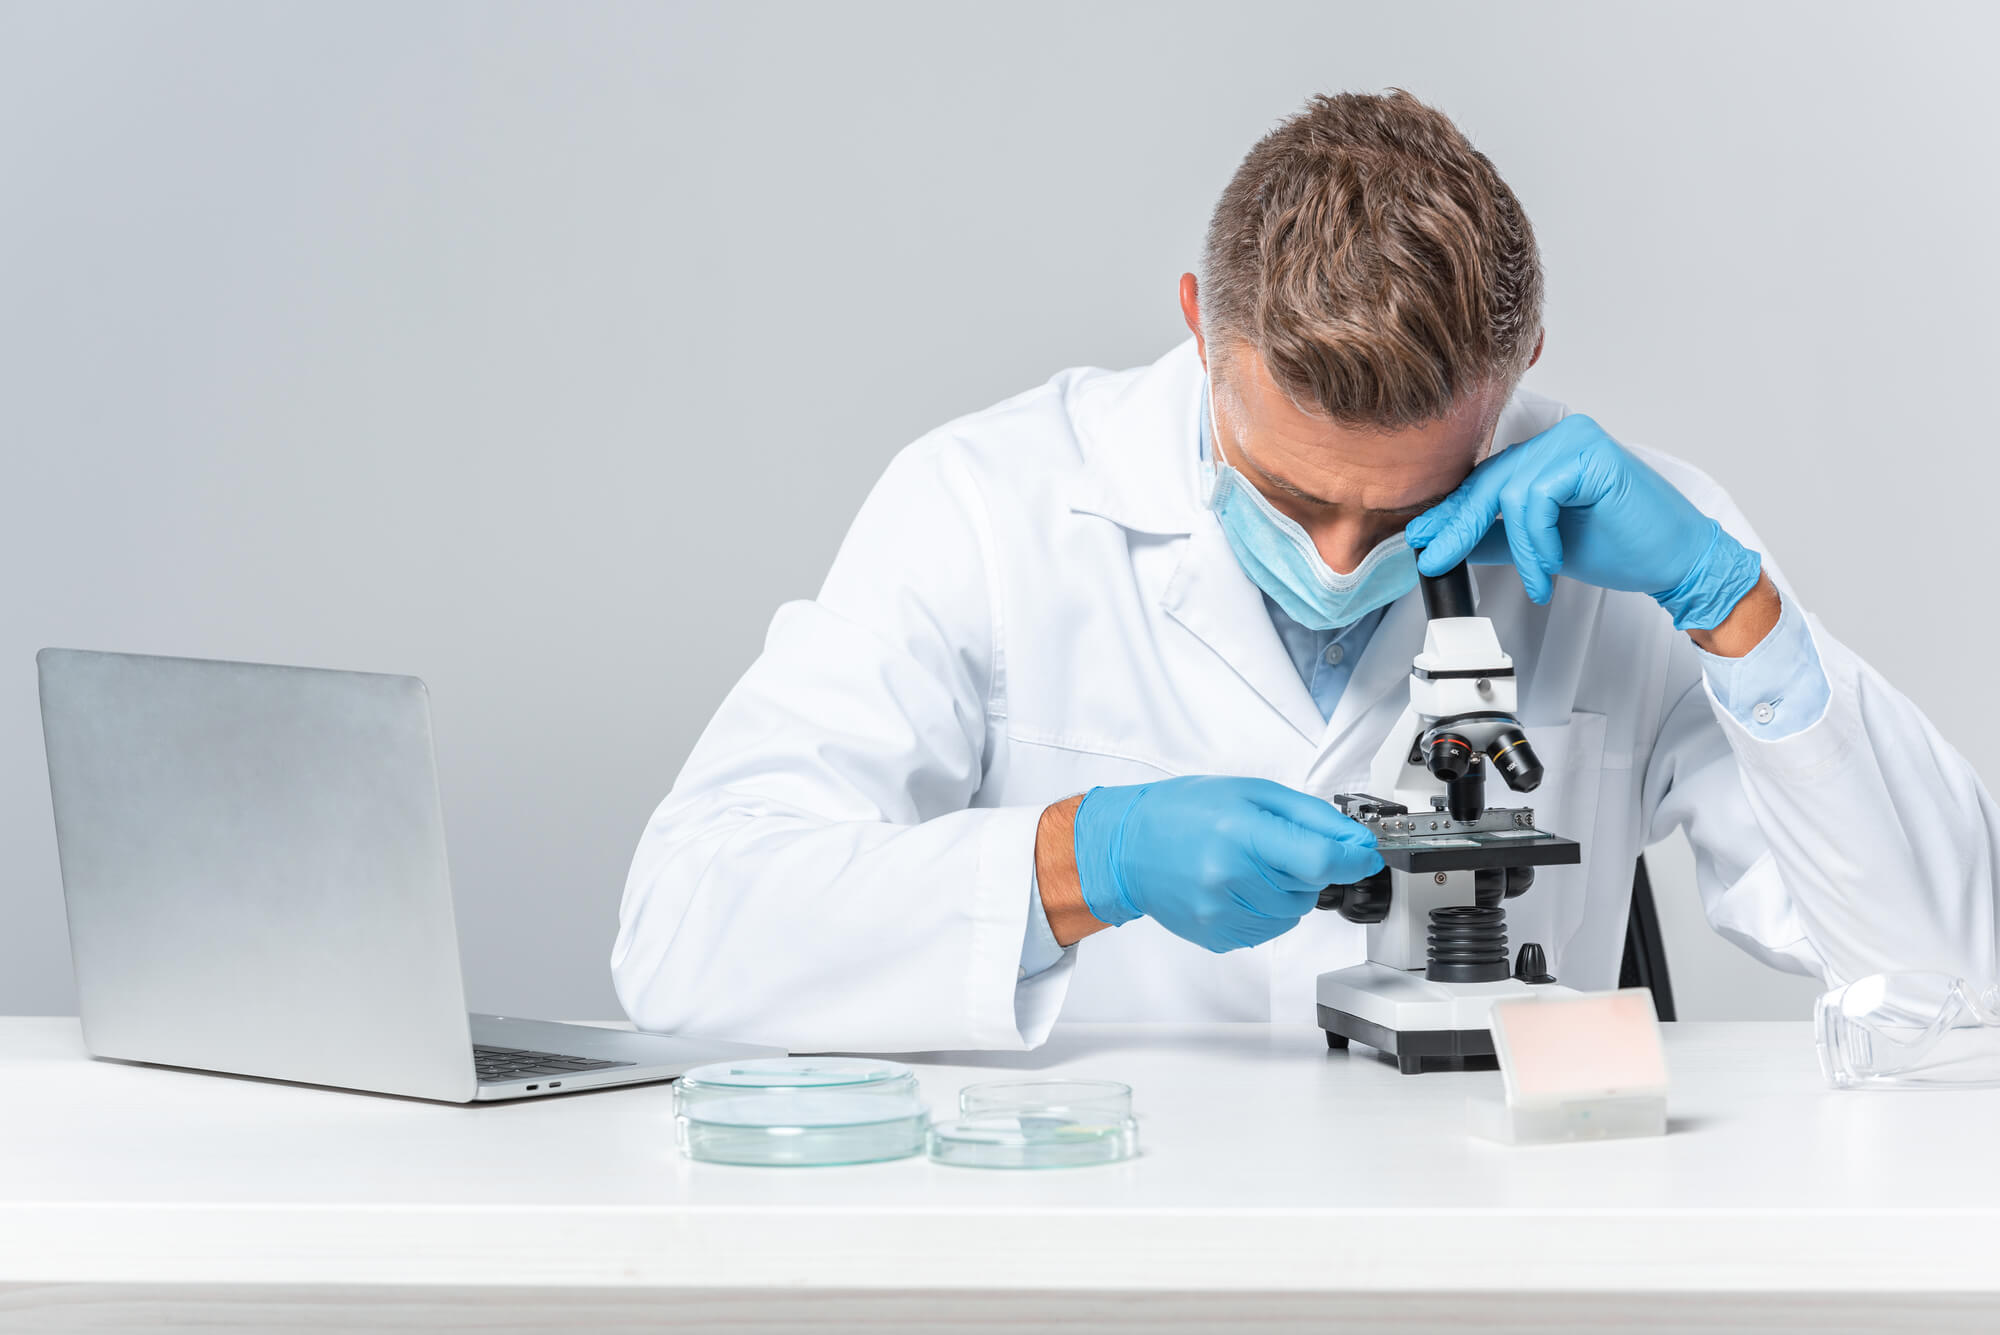 A male scientist in a white lab coat looks down into a microscope while researching the benefits and disadvantages of testosterone pellets.